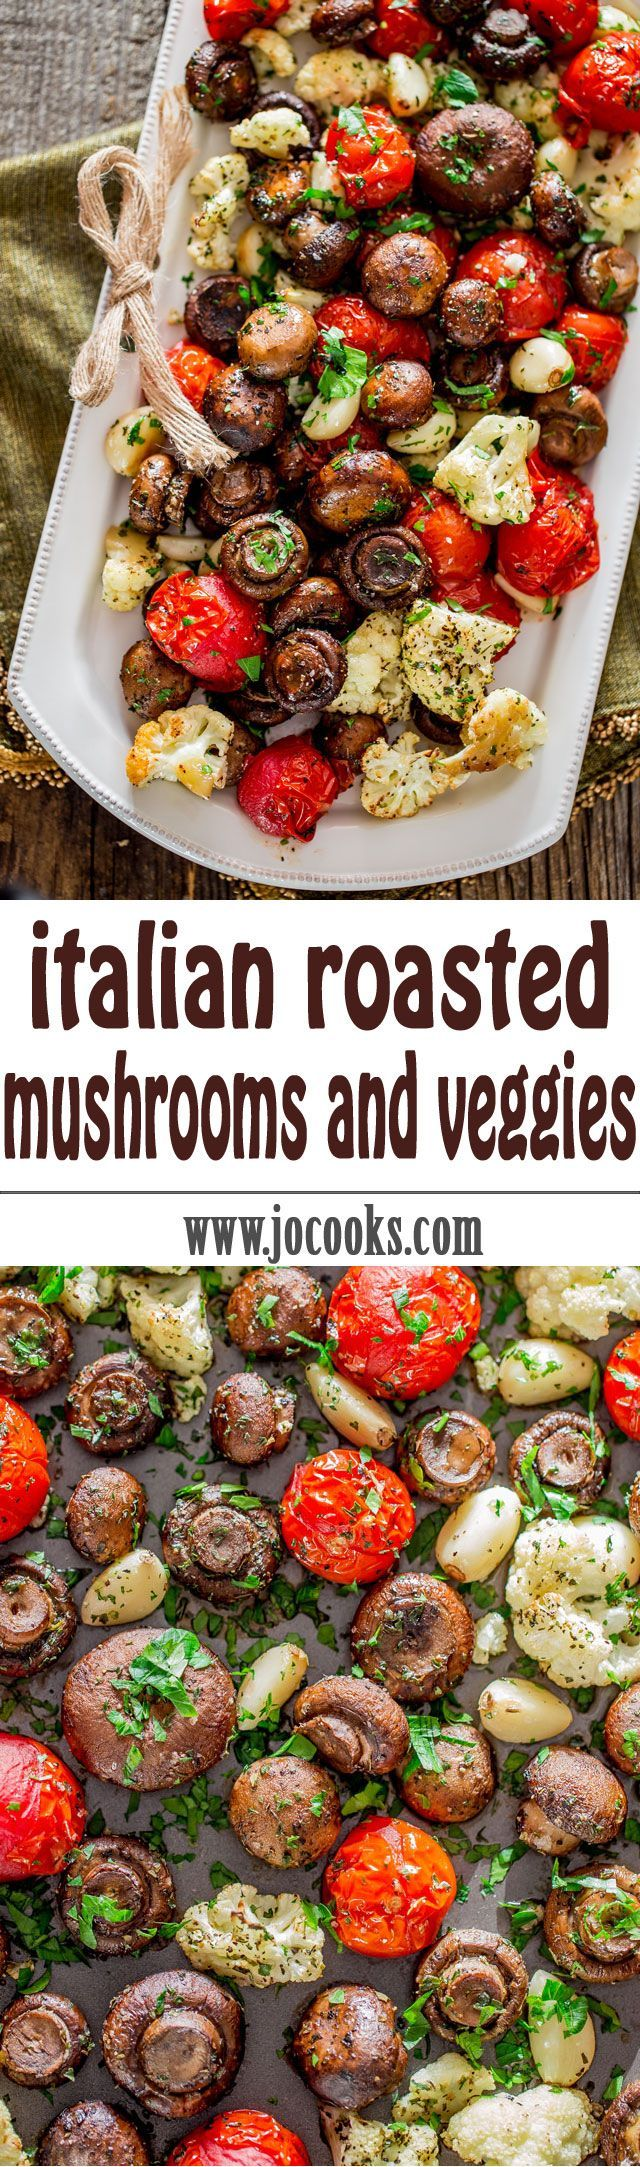 Roasted Mushrooms and Veggies - absolutely the easiest way to roast mushrooms, cauliflower, tomatoes and garlic Italian style. Simple and delicious.